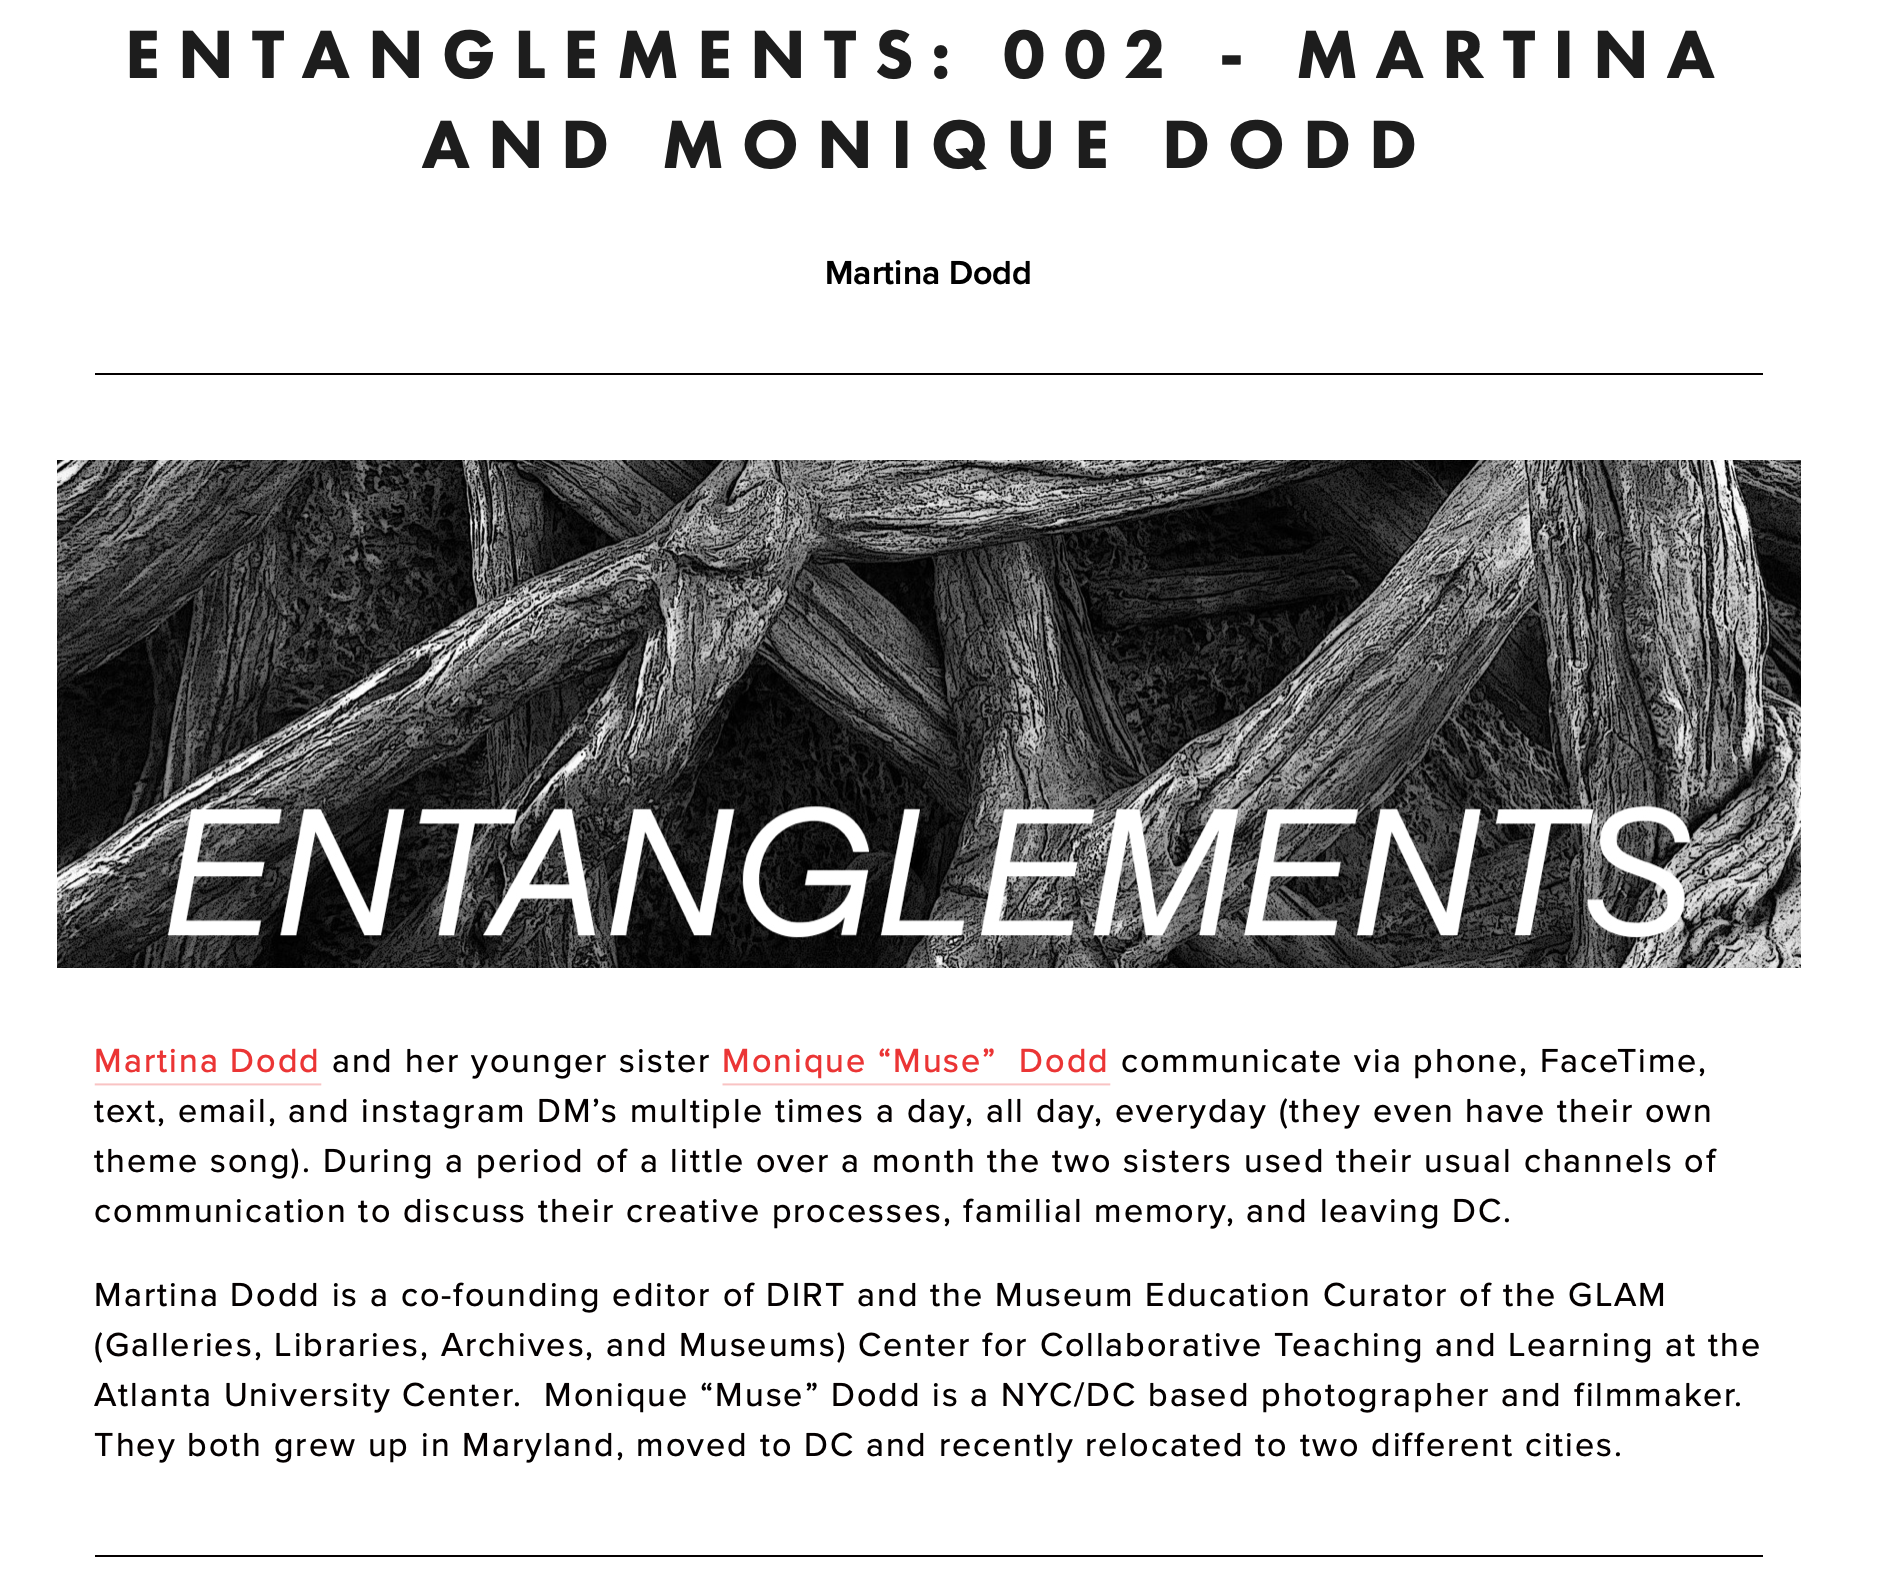 """ENTANGLEMENTS: 002 - MARTINA AND MONIQUE DODD - """"MA: Why was it important for you to involve our family in the film?MO: As I was showing the film to a few different people they asked me what did my family feel about the project, and at that point I hadn't really talked that much about the film with anyone, but mom and dad had seen the first part and were lowkey freaked out.Including my family was another way for me to connect myself with my ancestry, they are leading the way, Grandma Shirley is featured and the sound behind her says remember who you are, Grandma reminds me who I am, where I come from and that as a granddaughter of Shirley Mae Ross Gibson, I am not one to mess with, ok?"""""""